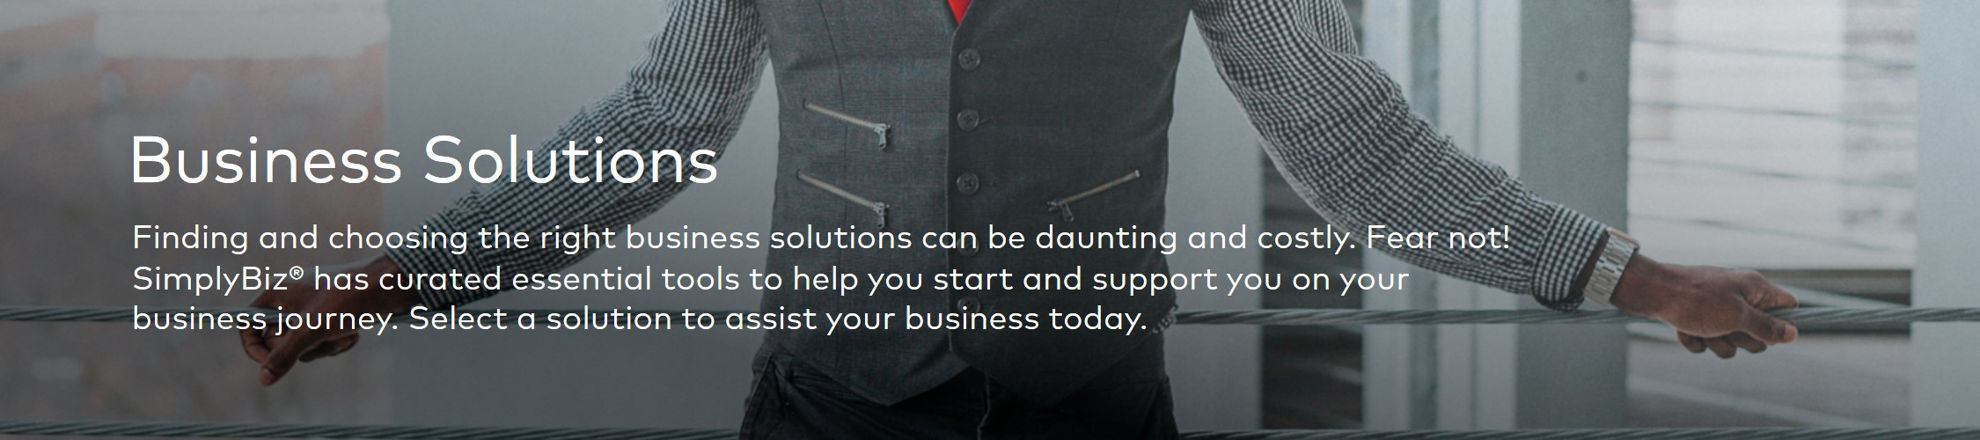 business solutions cta